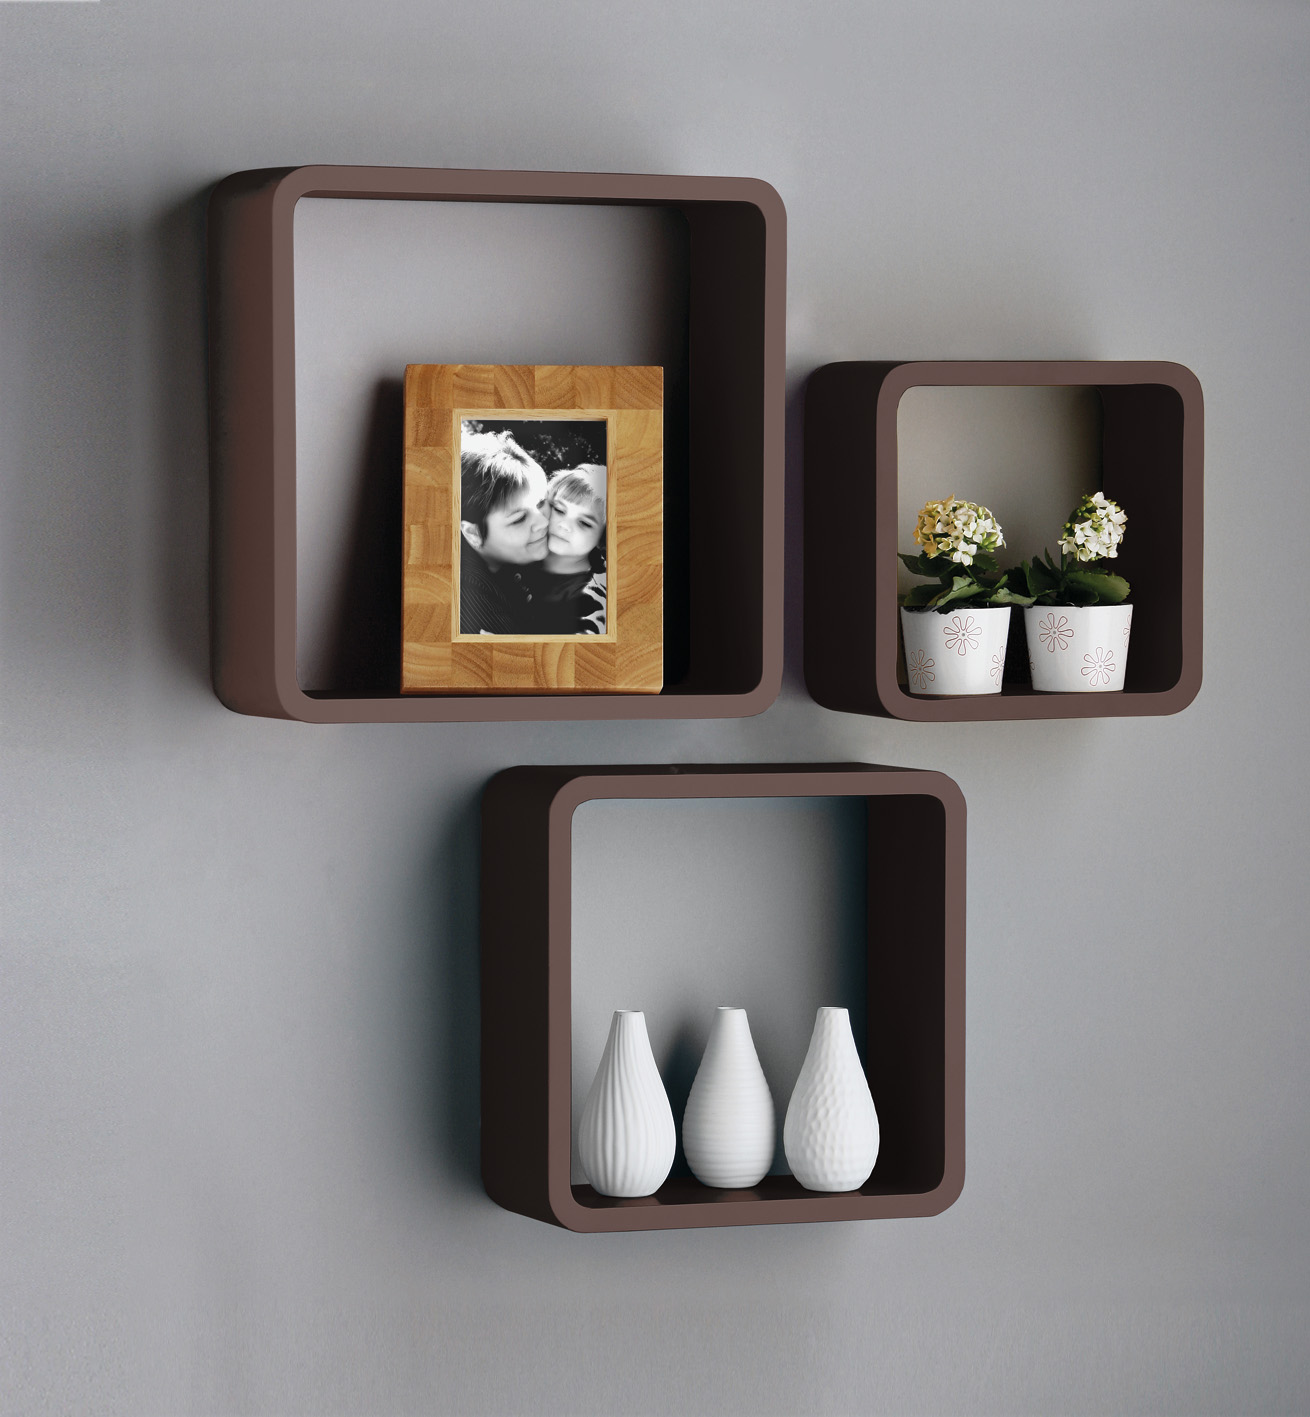 top  best floating wall shelves for your homes  infographics - floating cube shelves form a part of contemporary furniture in recenttimes it has become trendy owing to its usability  minimal look